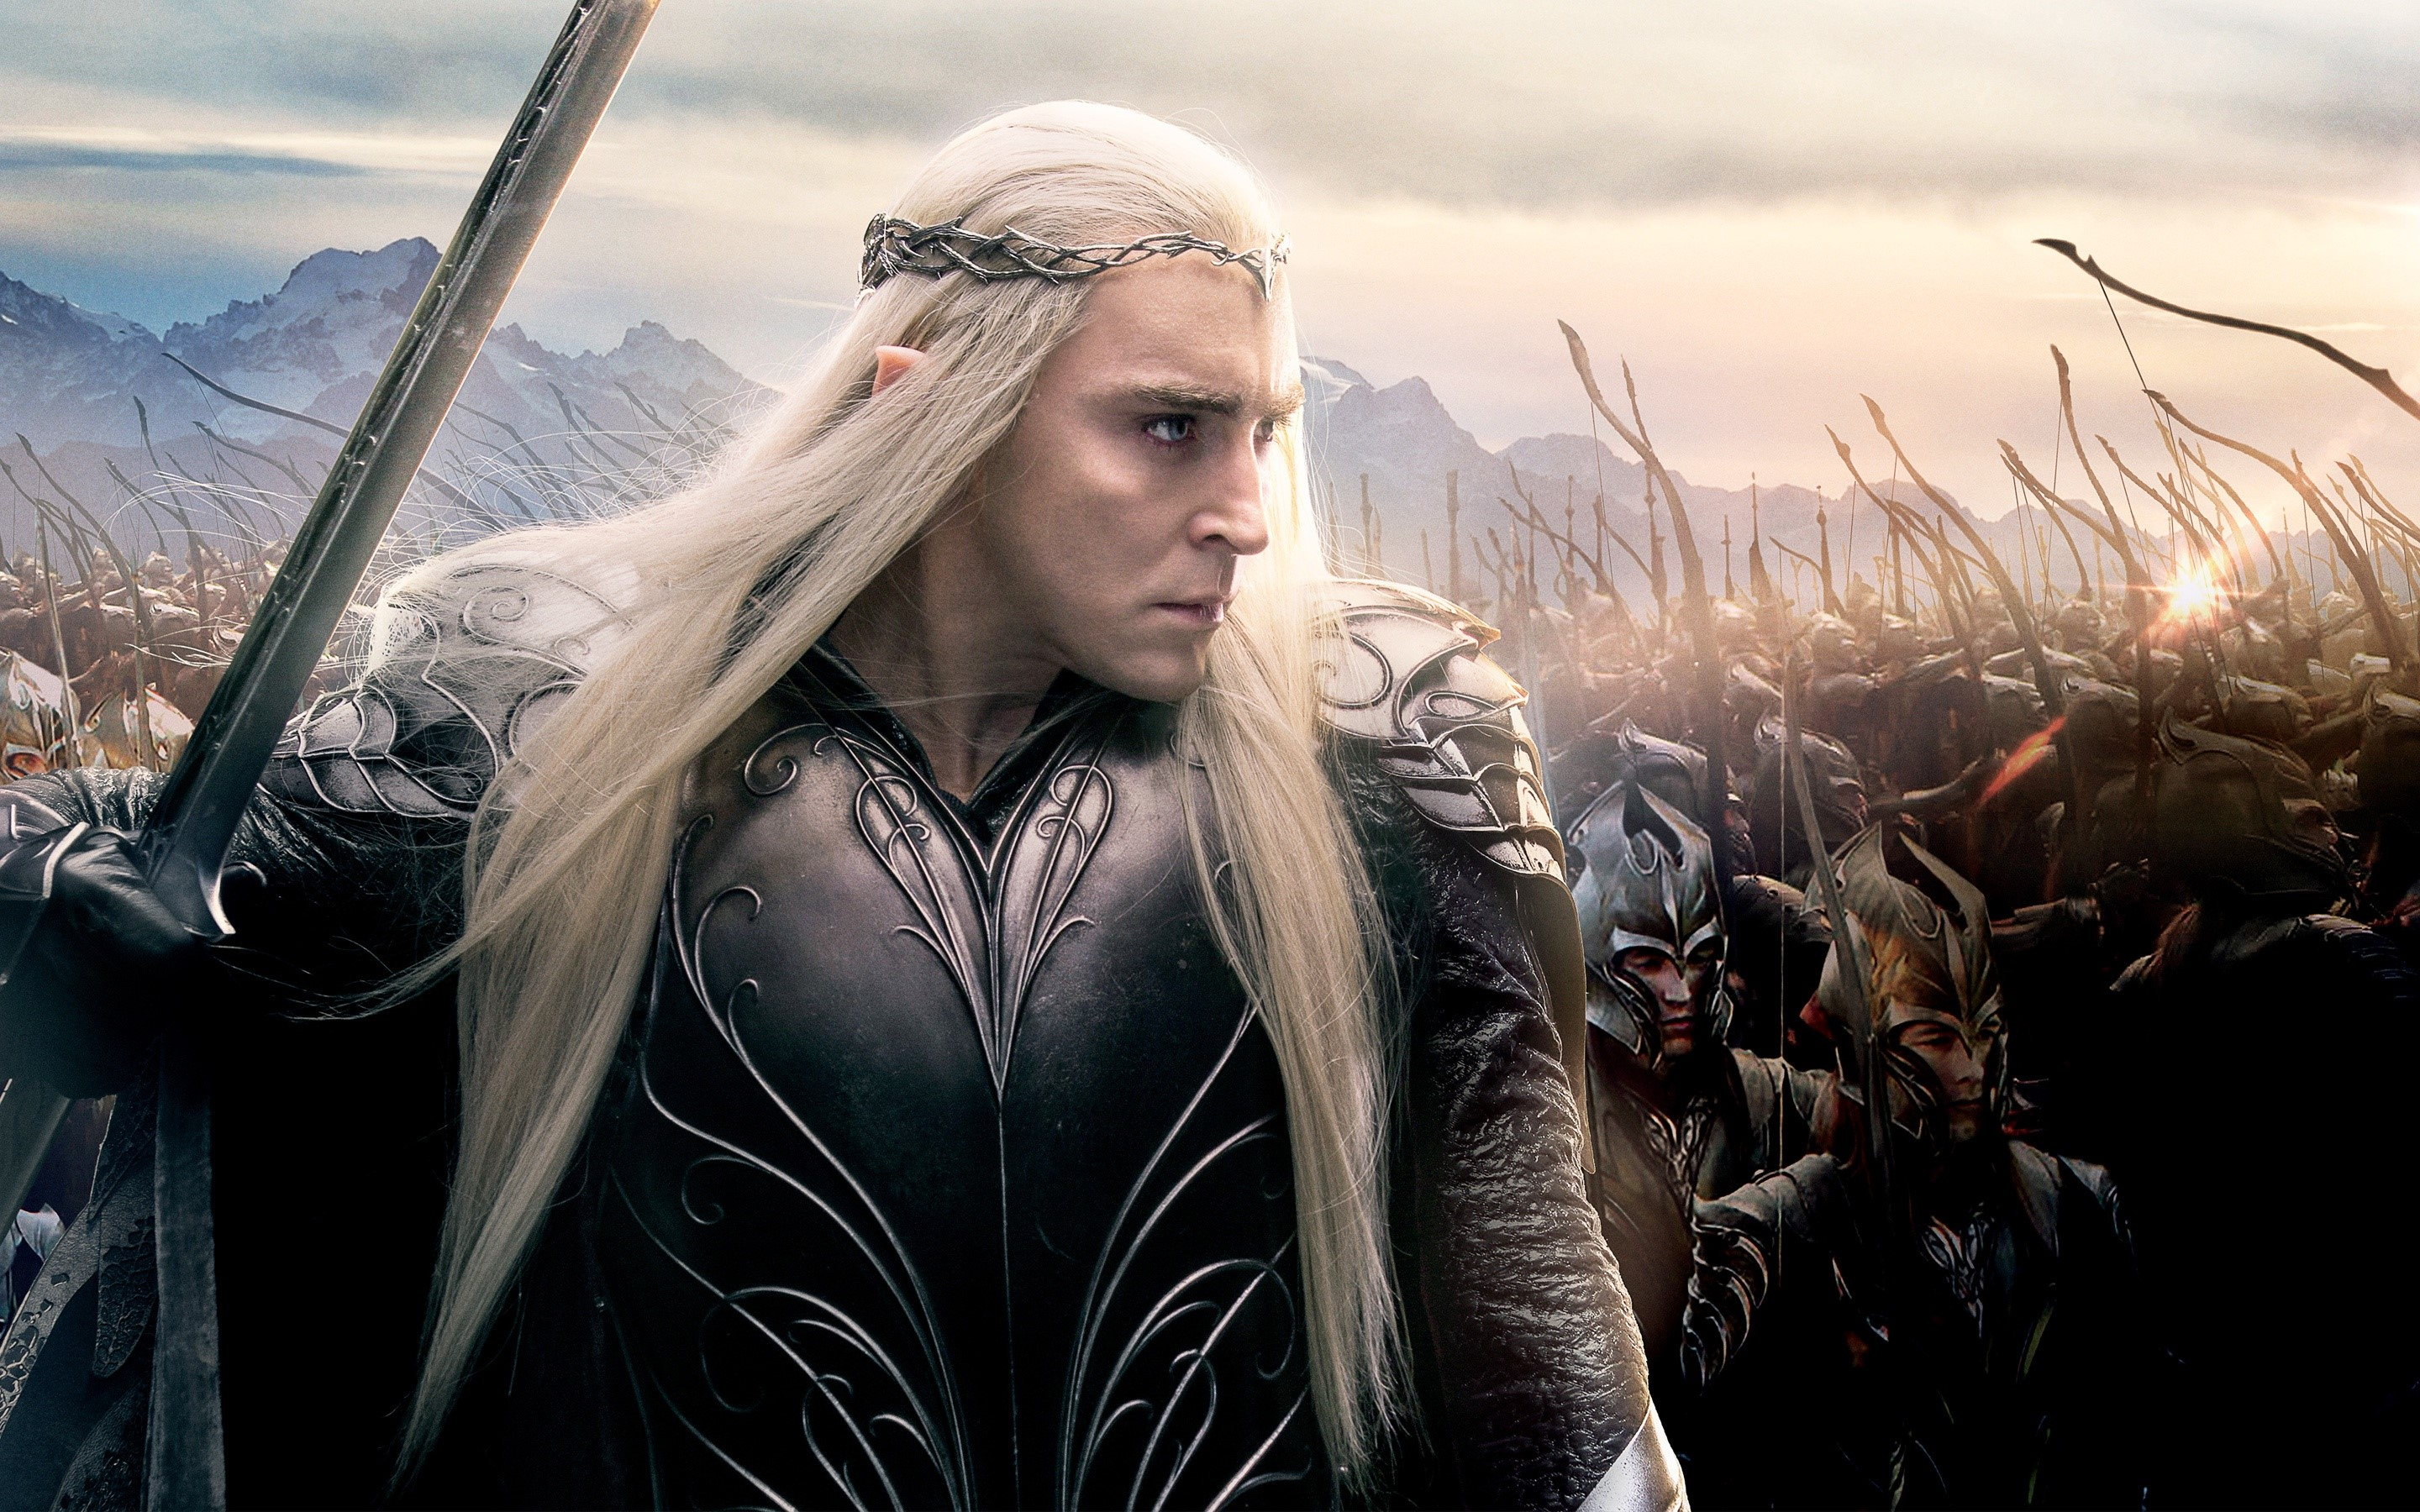 Wallpaper Lee Pace as Thranduil in the Hobbit 3